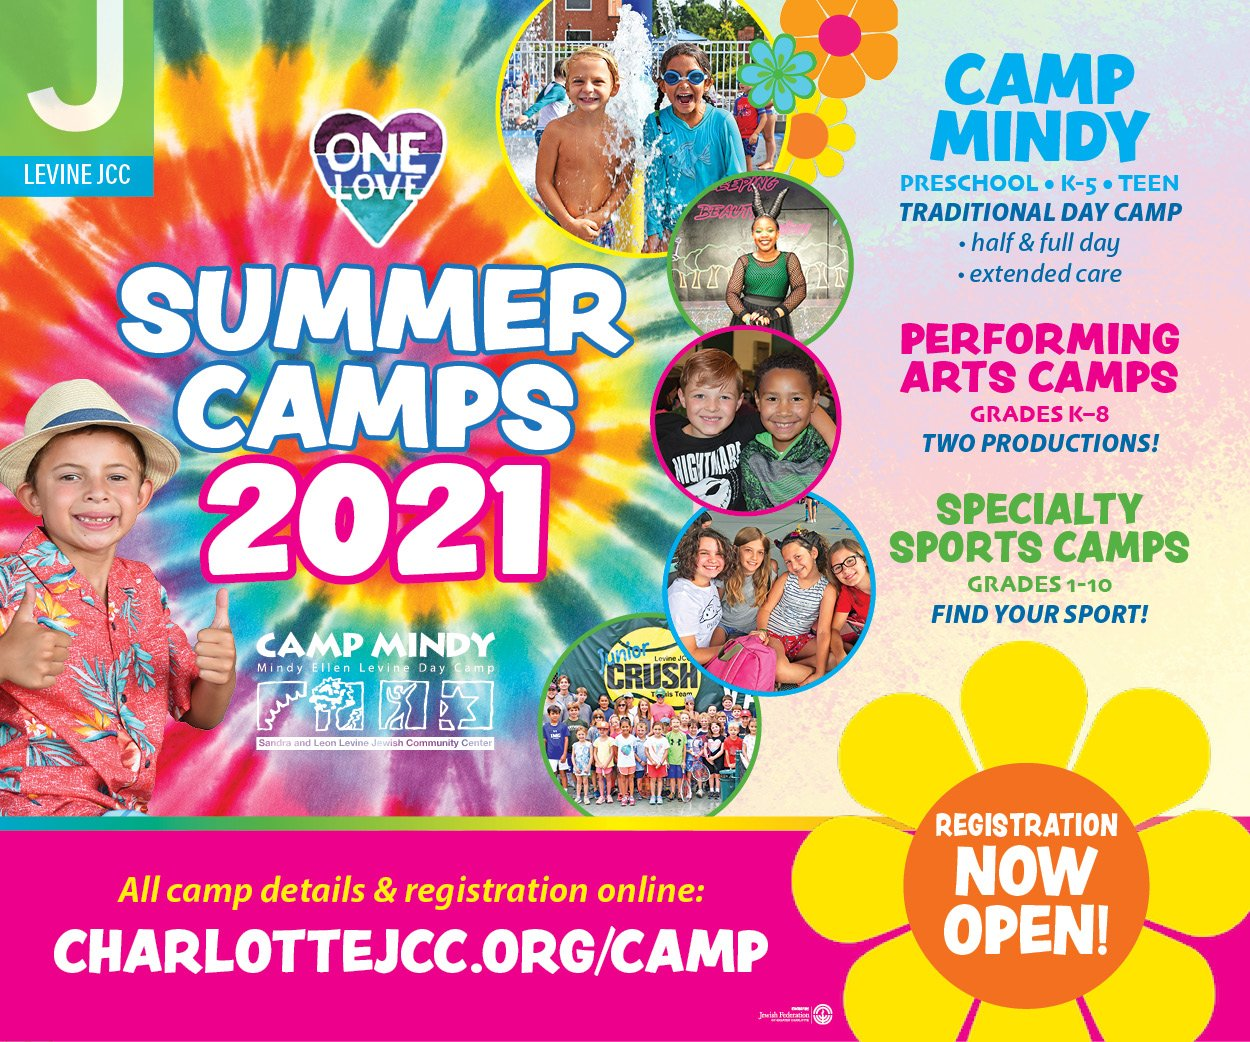 summer camps at the Levine JCC